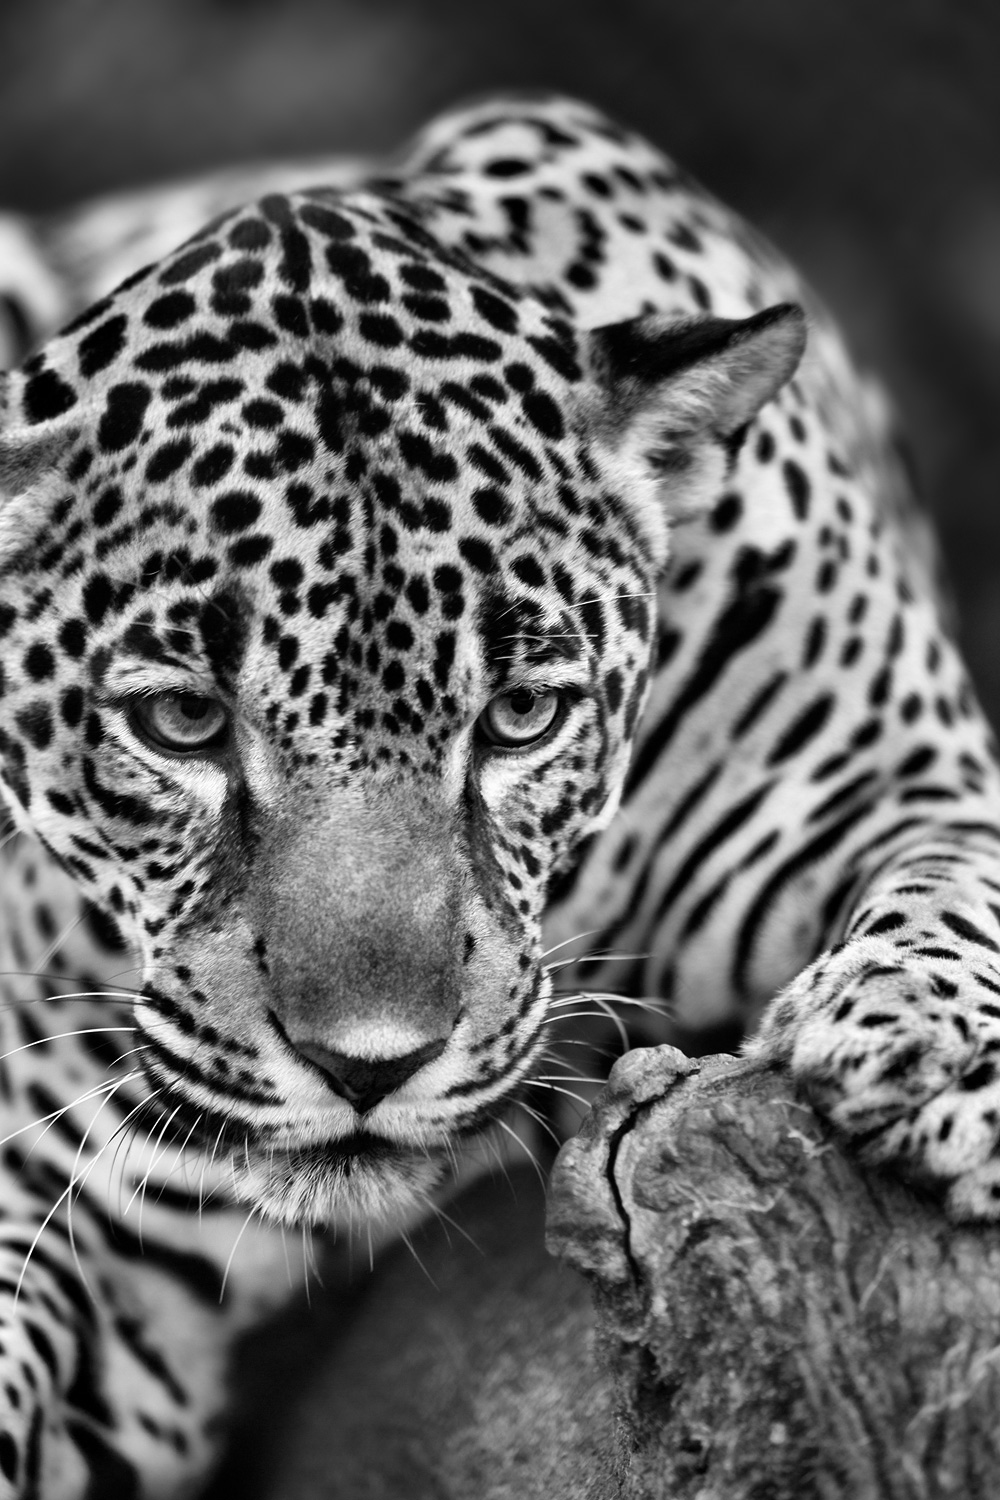 Portrait of a Jaguar (Panthera once) - Rio Quatro Rehabilitation Farm, Costa Rica    Canon 5D mark iii + Canon 300mm f2.8L IS